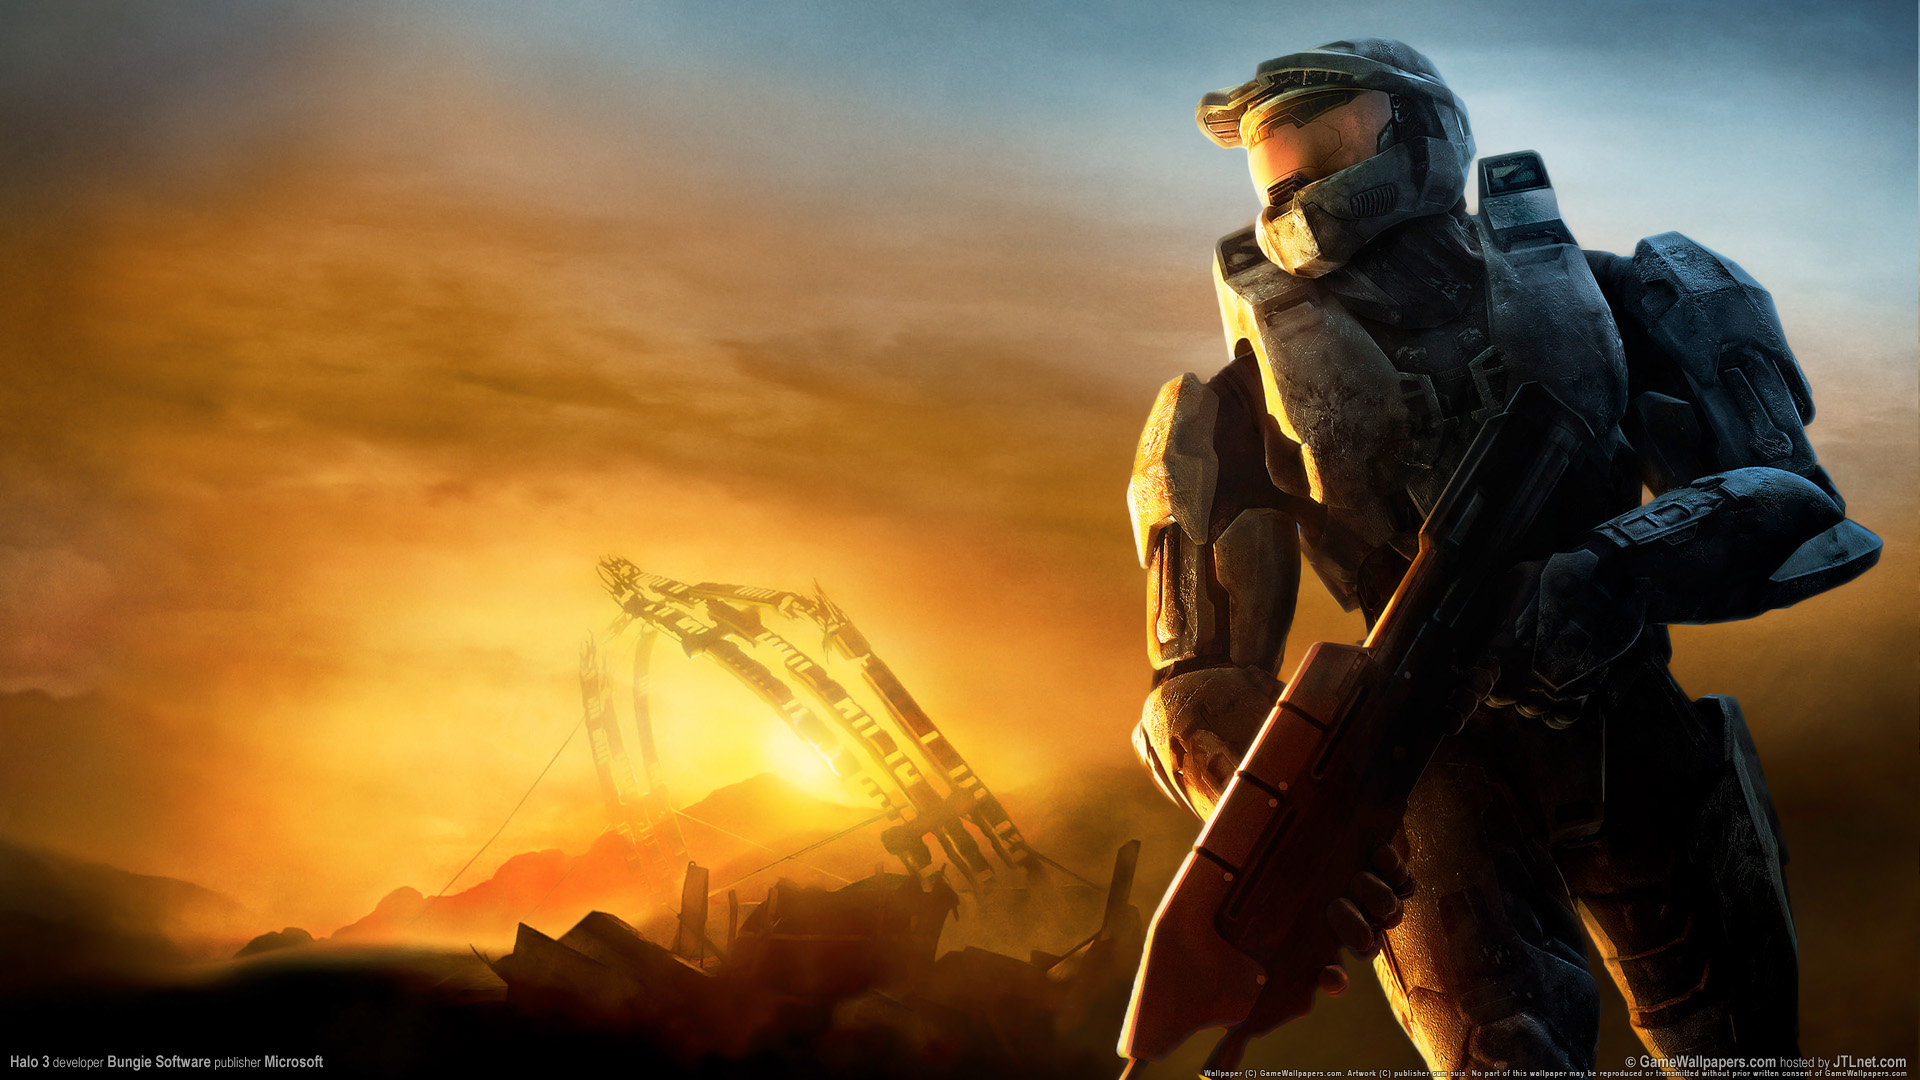 HD Wallpapers Halo 3 HD